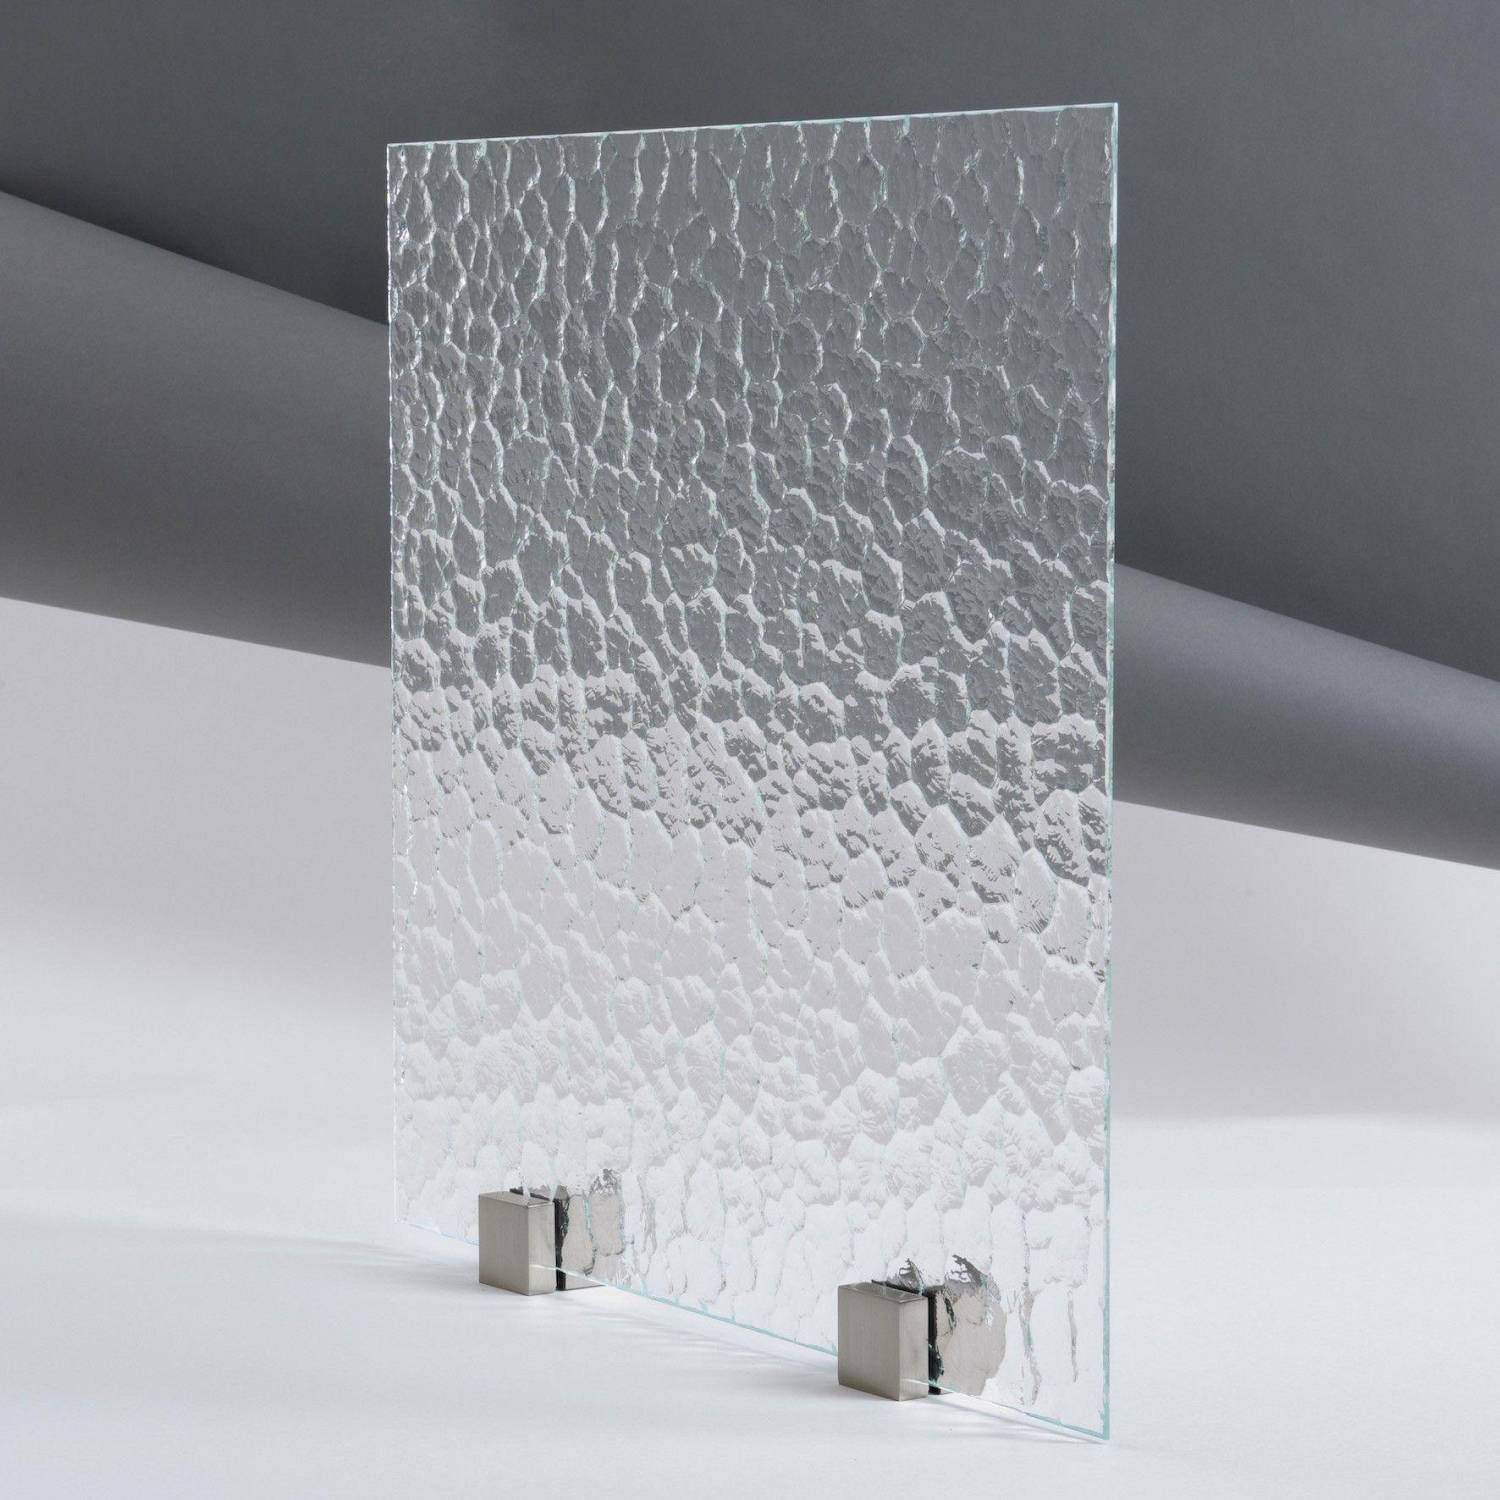 Verre imprim monumental paisseur 4 mm for Application miroir pc